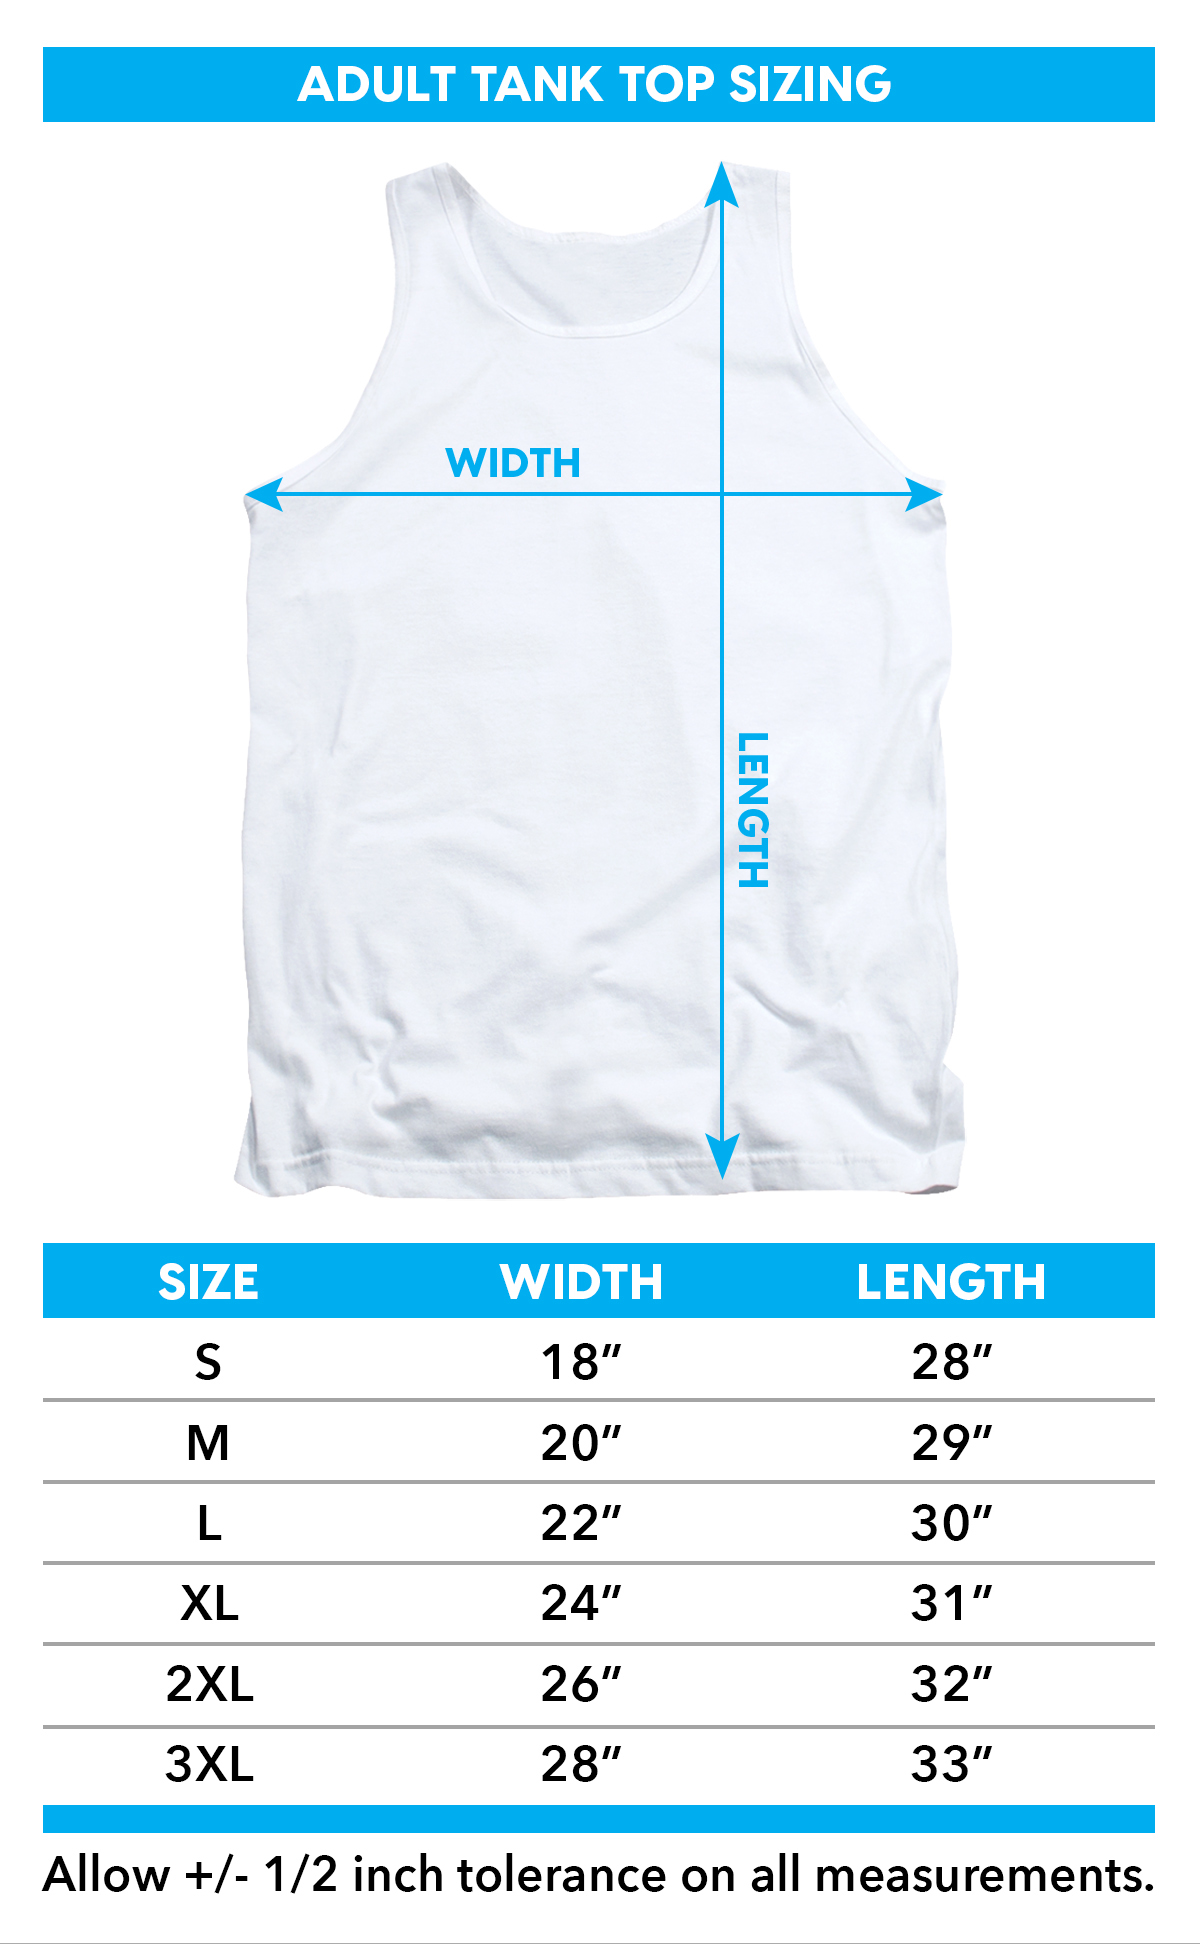 Sizing chart for Shazam Movie Tank Top - Chibi TRV-SHZM116-TK